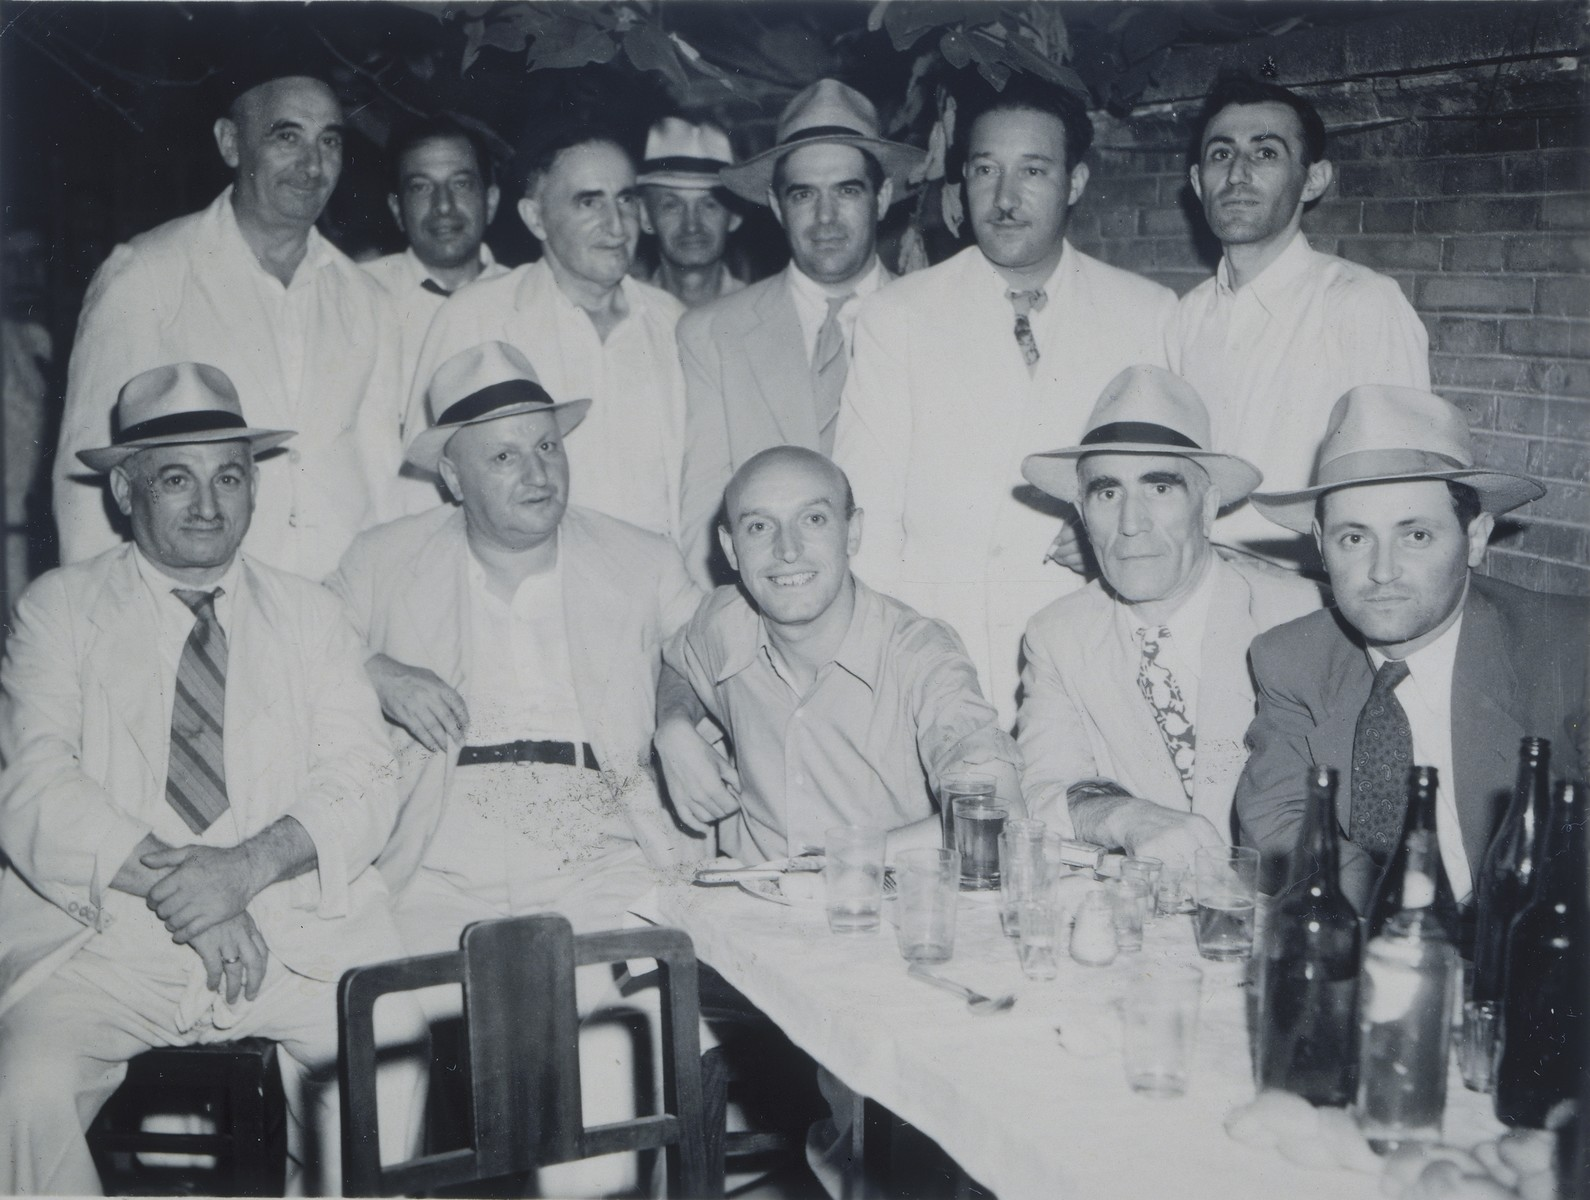 Group portrait of members of the Mir Yeshiva in Shanghai.  Hirsch Millner is seated at the bottom right.  Eli Rolavsky is standing on the far right.